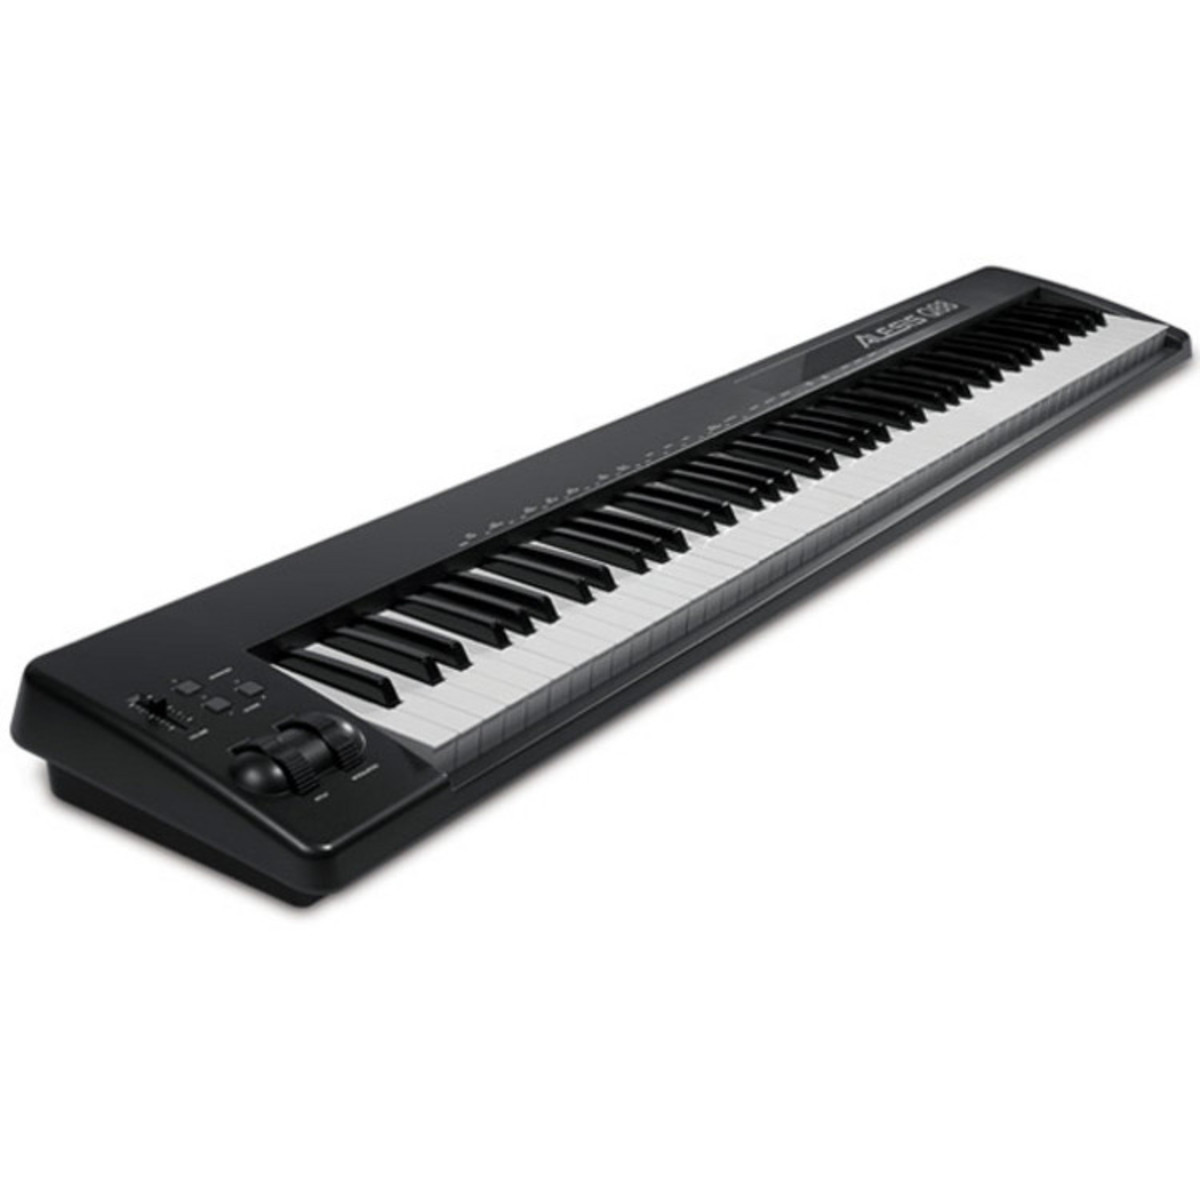 alesis q88 clavier maitre usb midi 88 touches. Black Bedroom Furniture Sets. Home Design Ideas